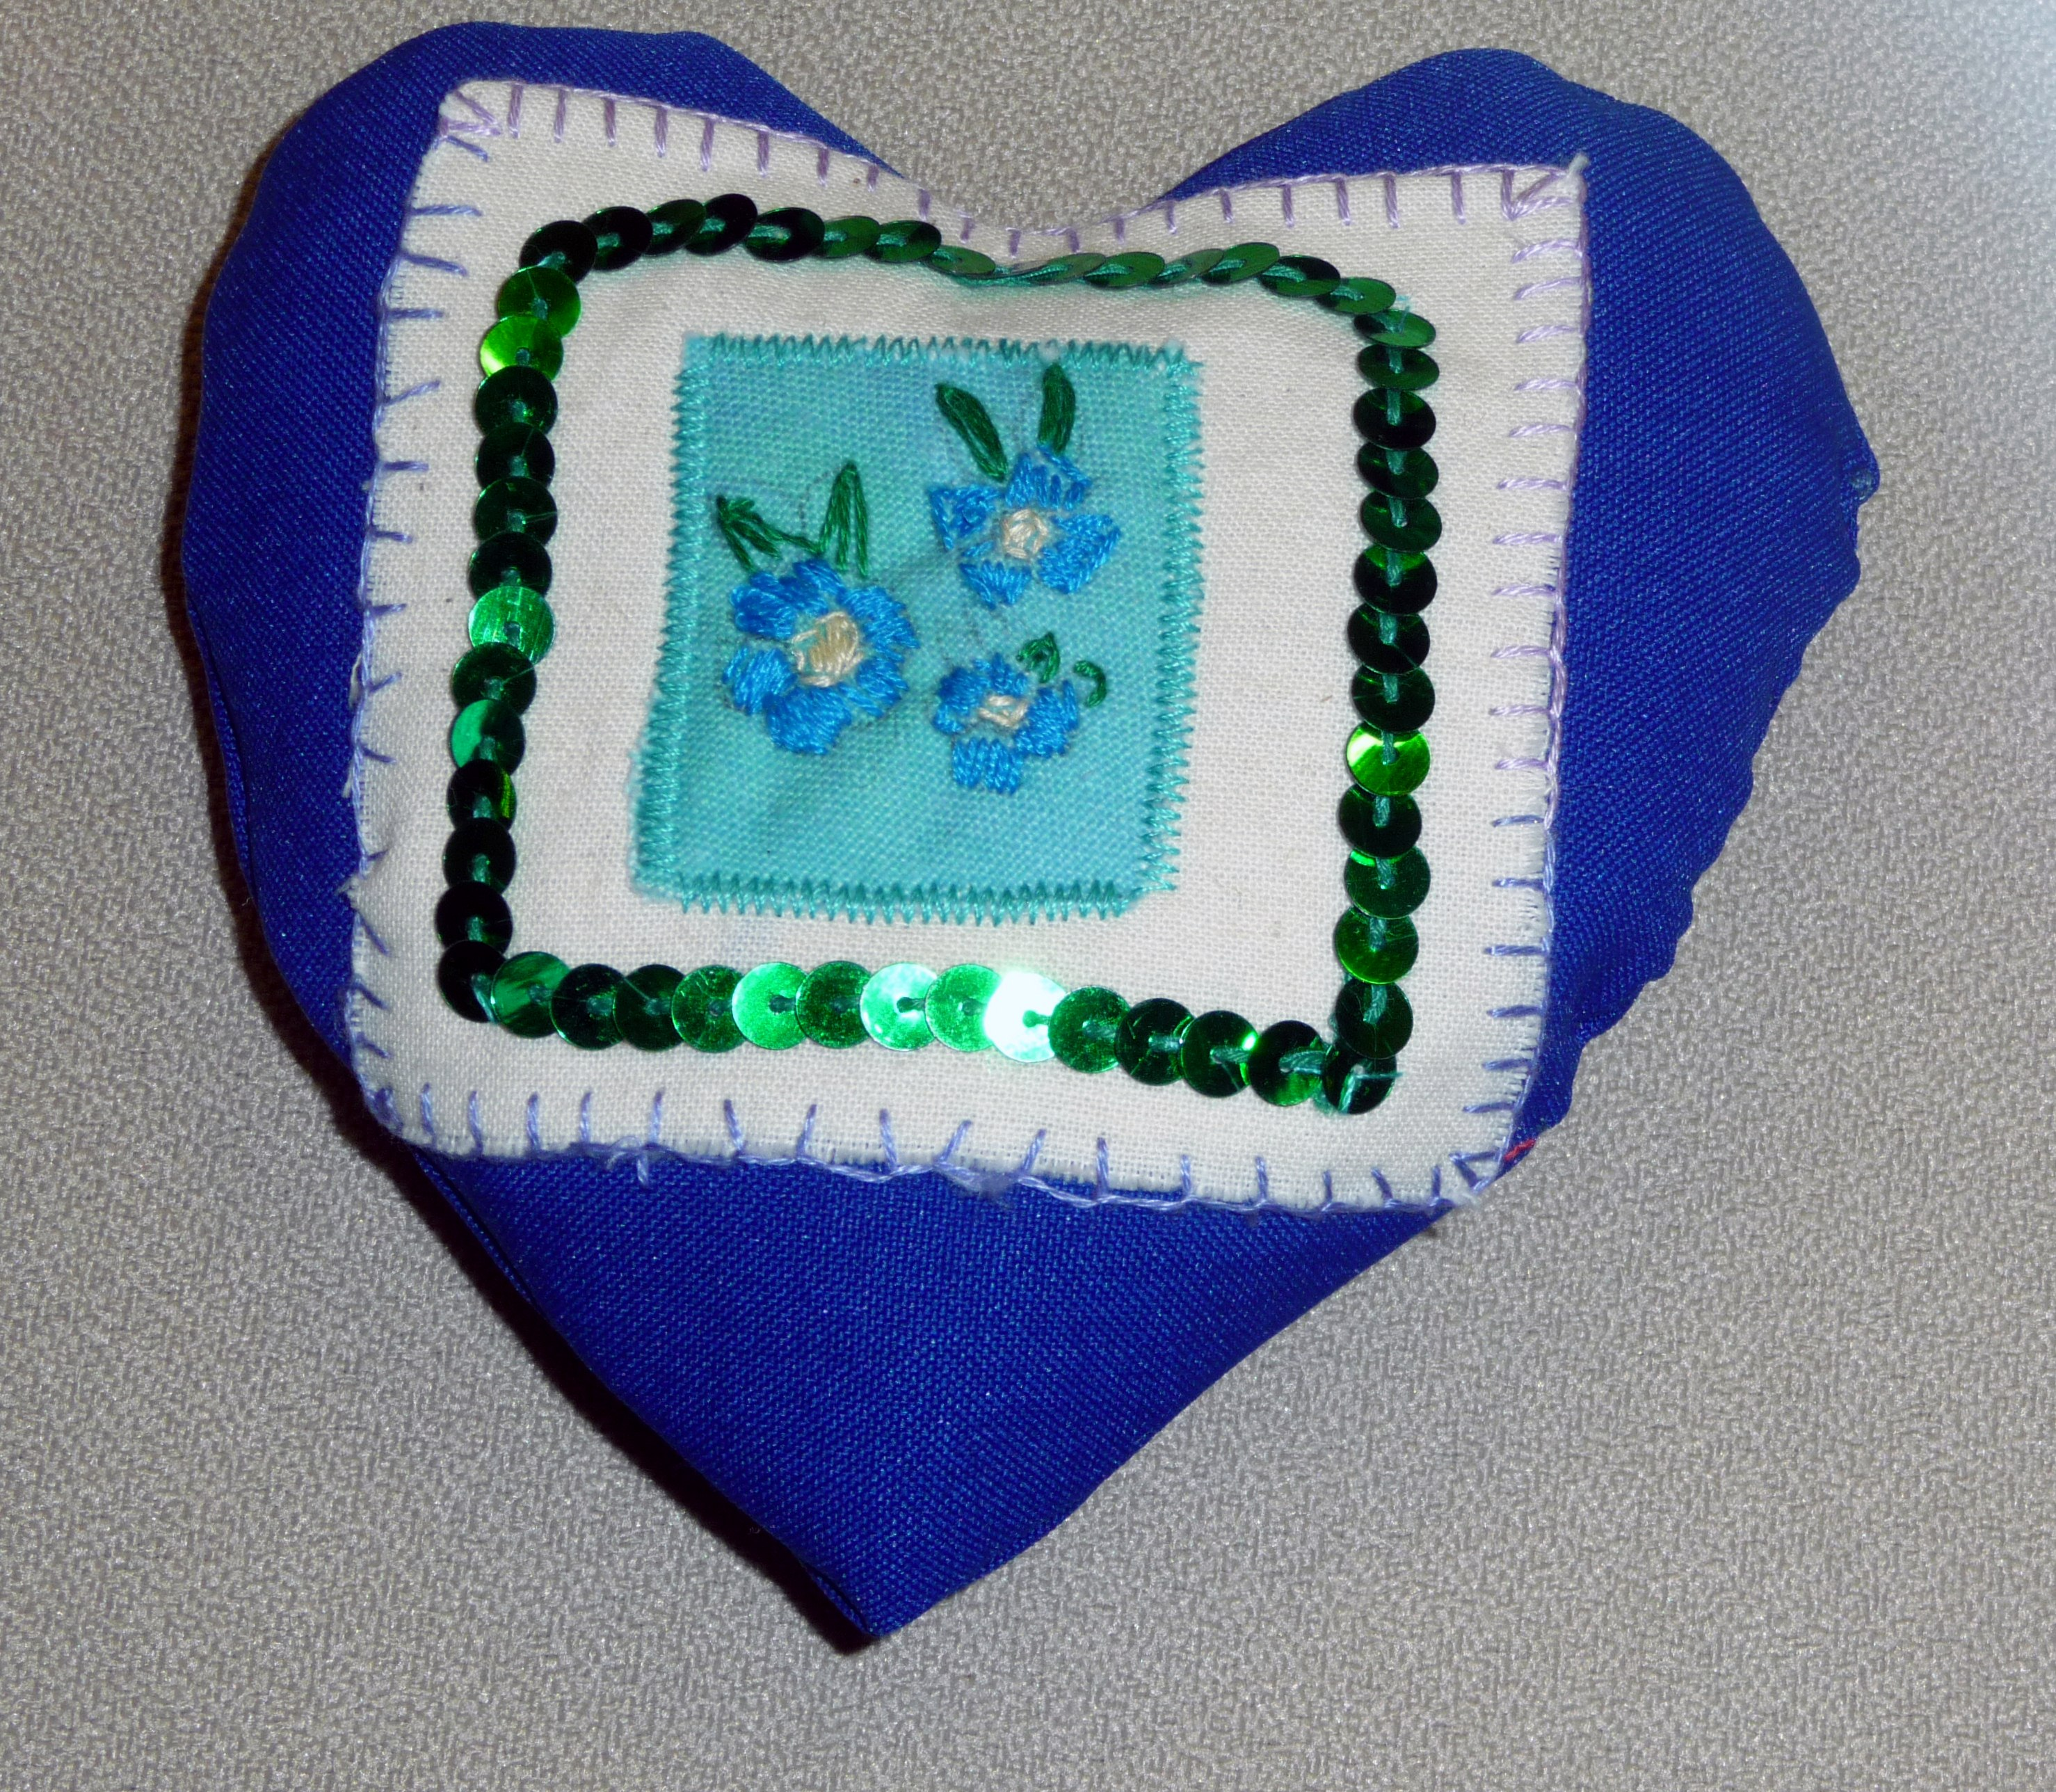 pincushion to commemorate World War 1 made by Emma a Merseyside Young Embroiderer